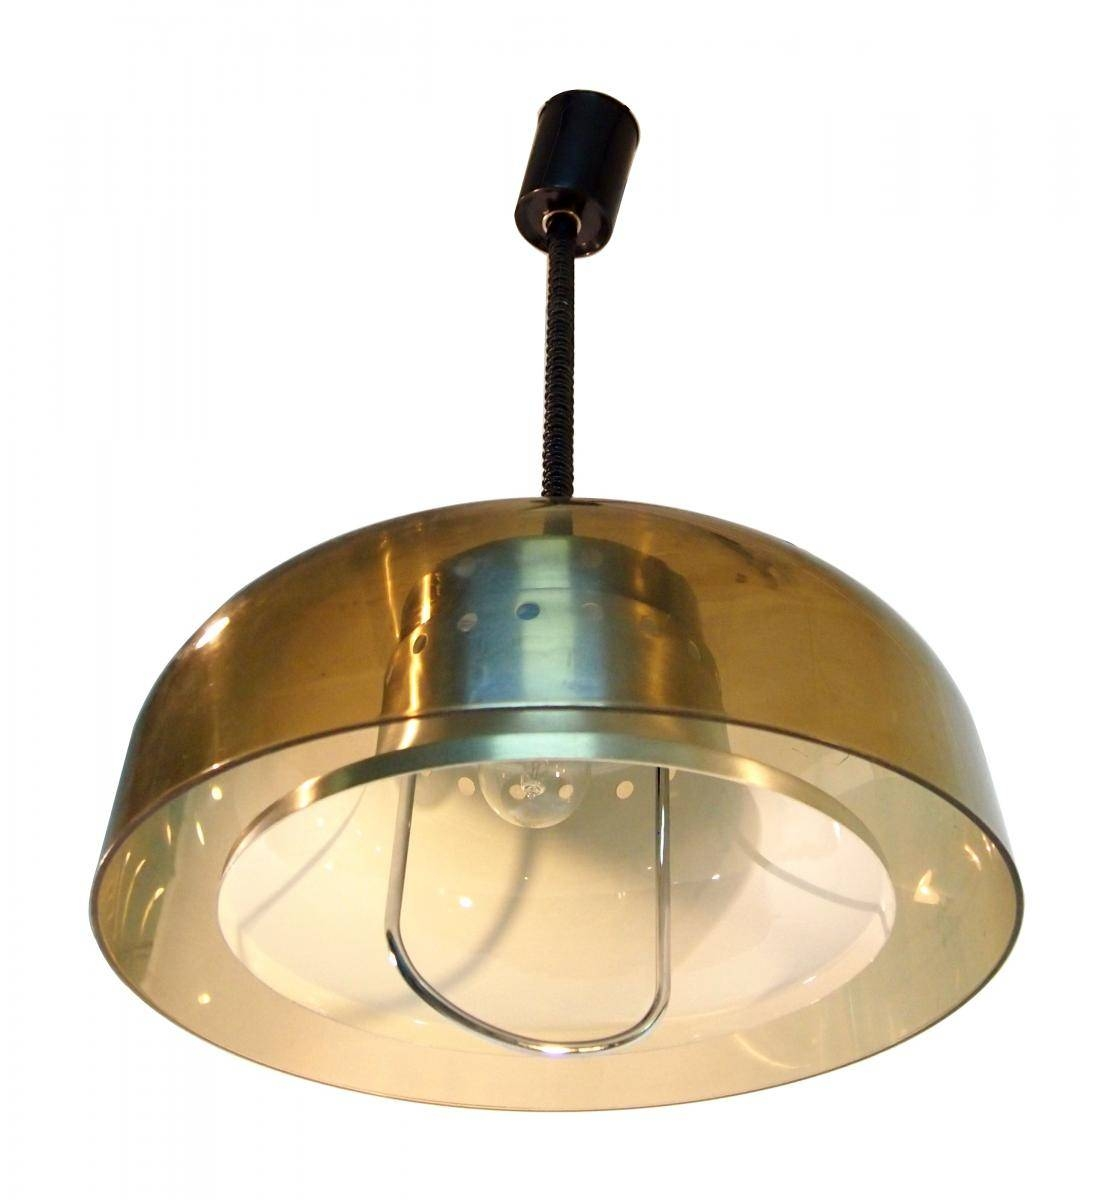 Pull-Down Space Age Pendant Hanging Lightharvey Guzzini, 1967 intended for Pull Down Pendant Lights (Image 10 of 15)